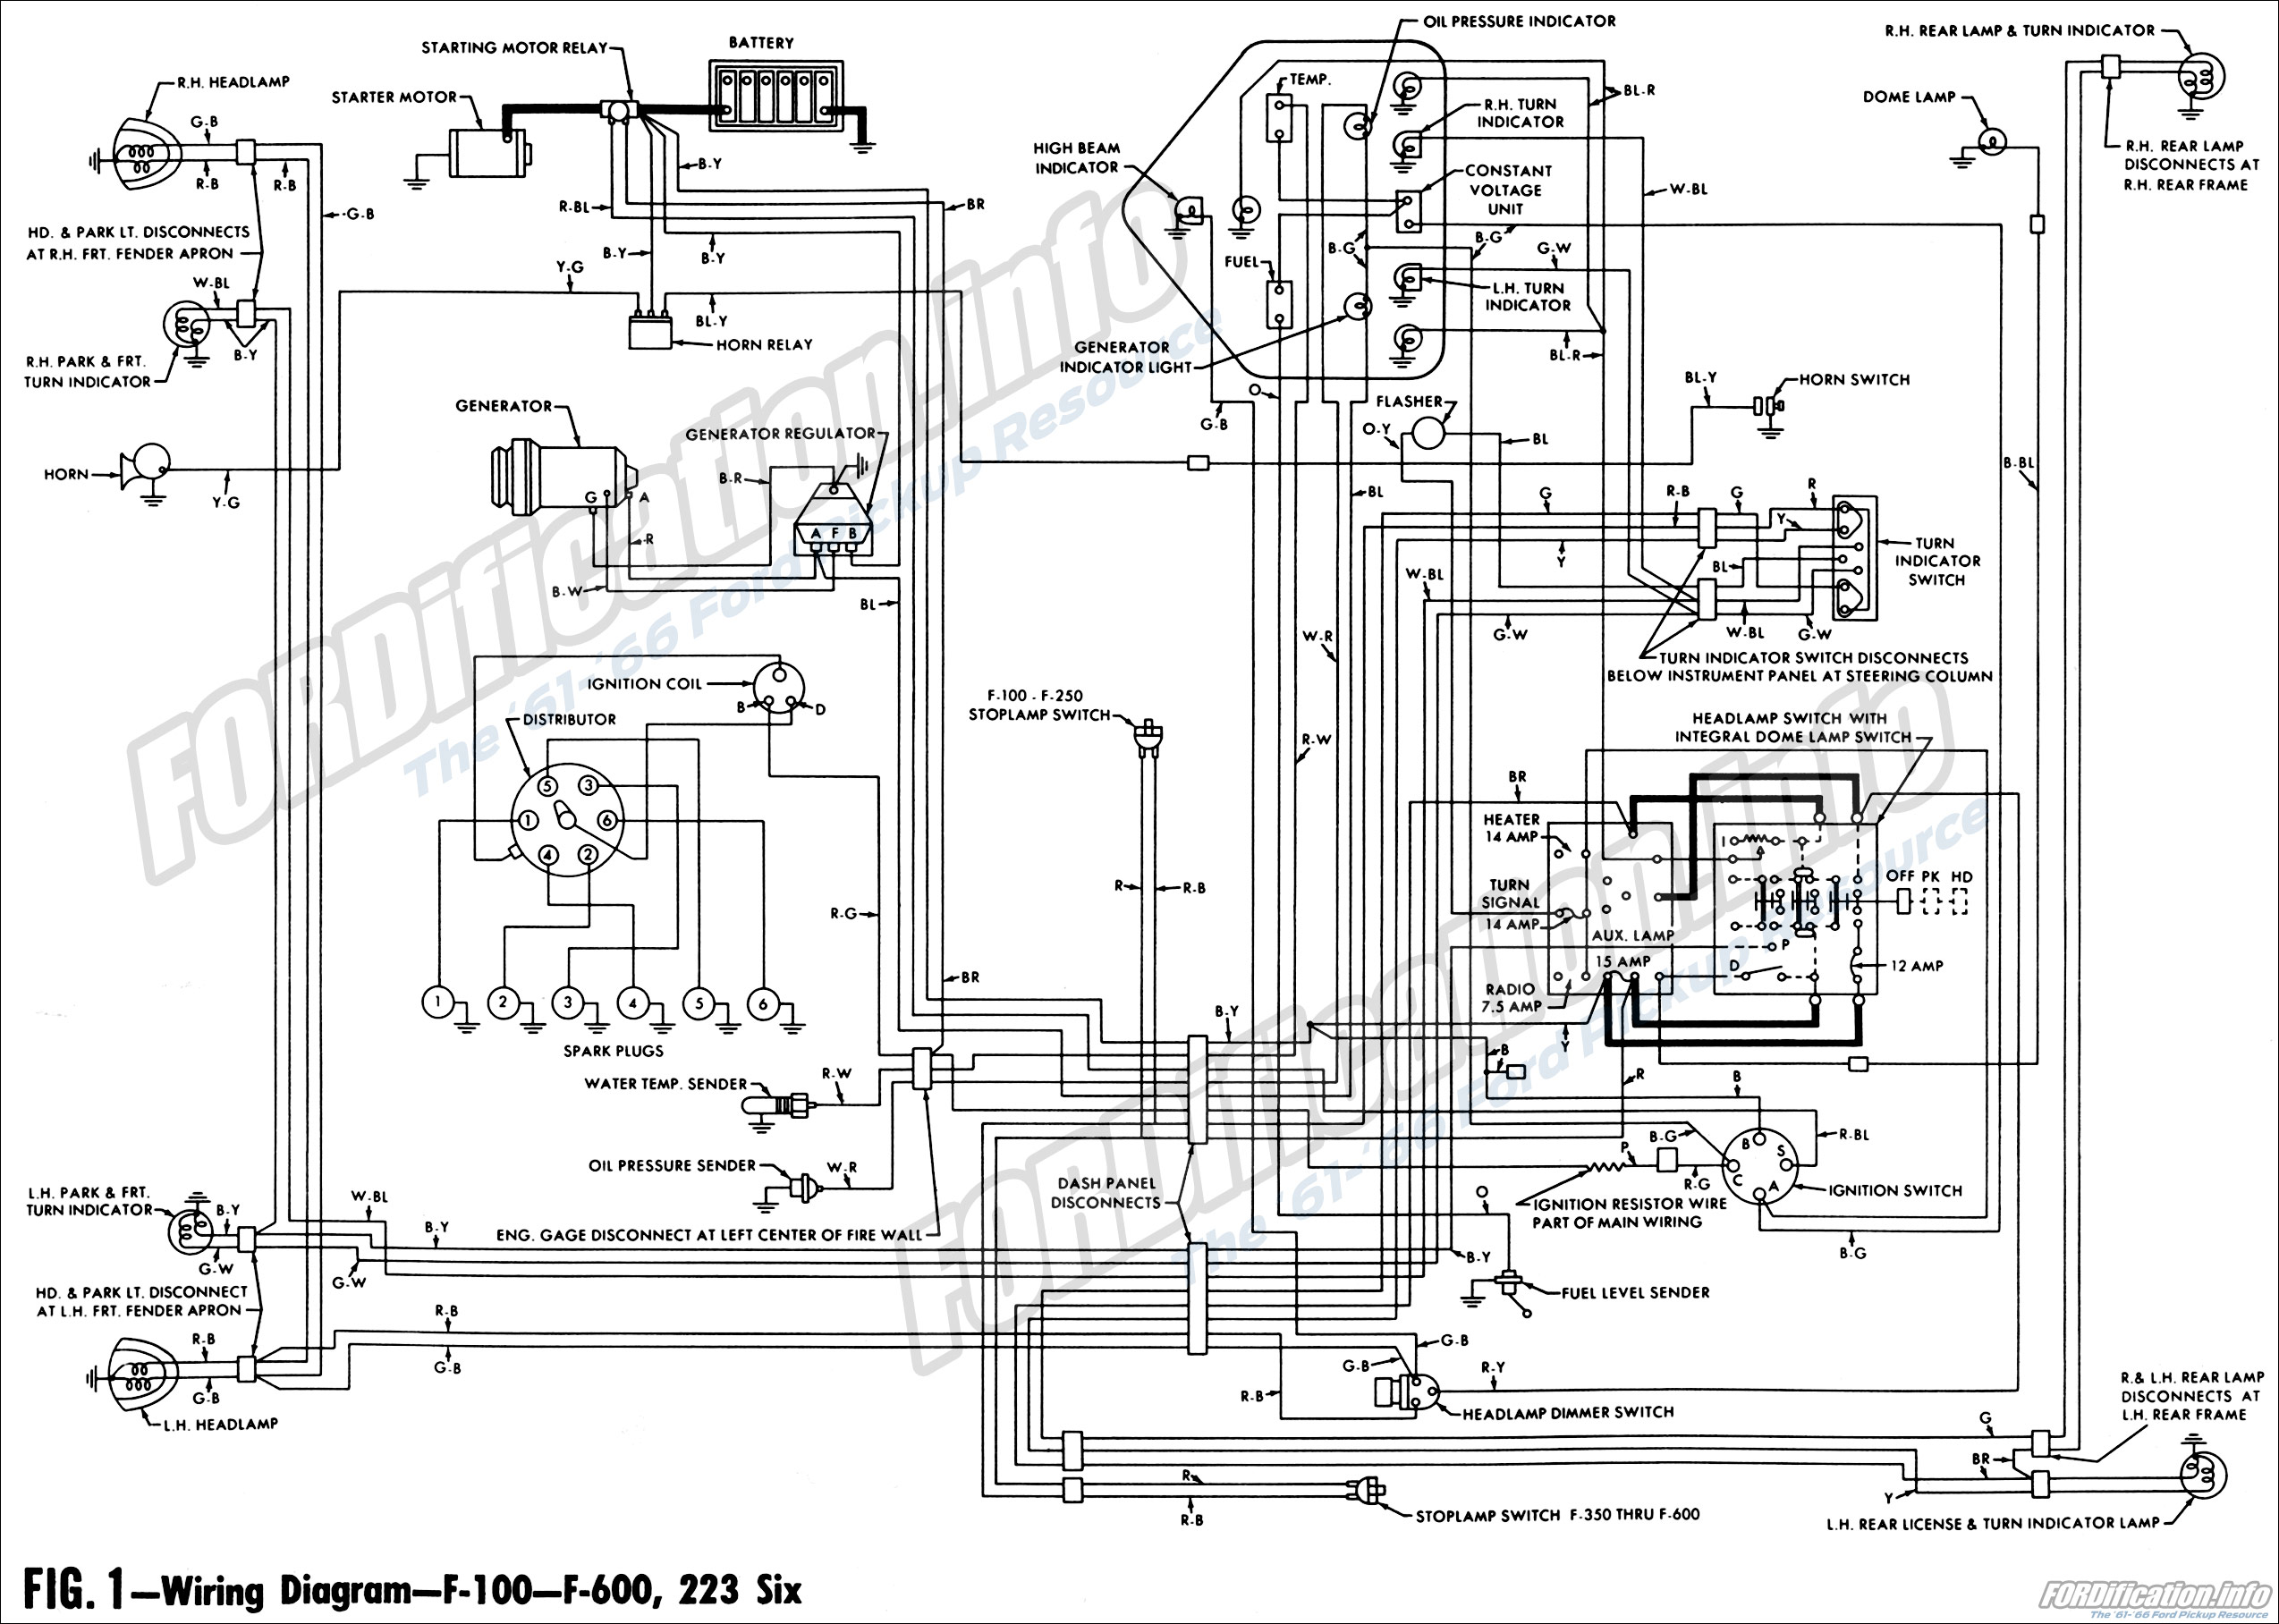 1961 ford truck wiring diagrams fordification info the '61 '66 Ford F-150 Wiring Diagram at 1961 Ford Wiring Diagram